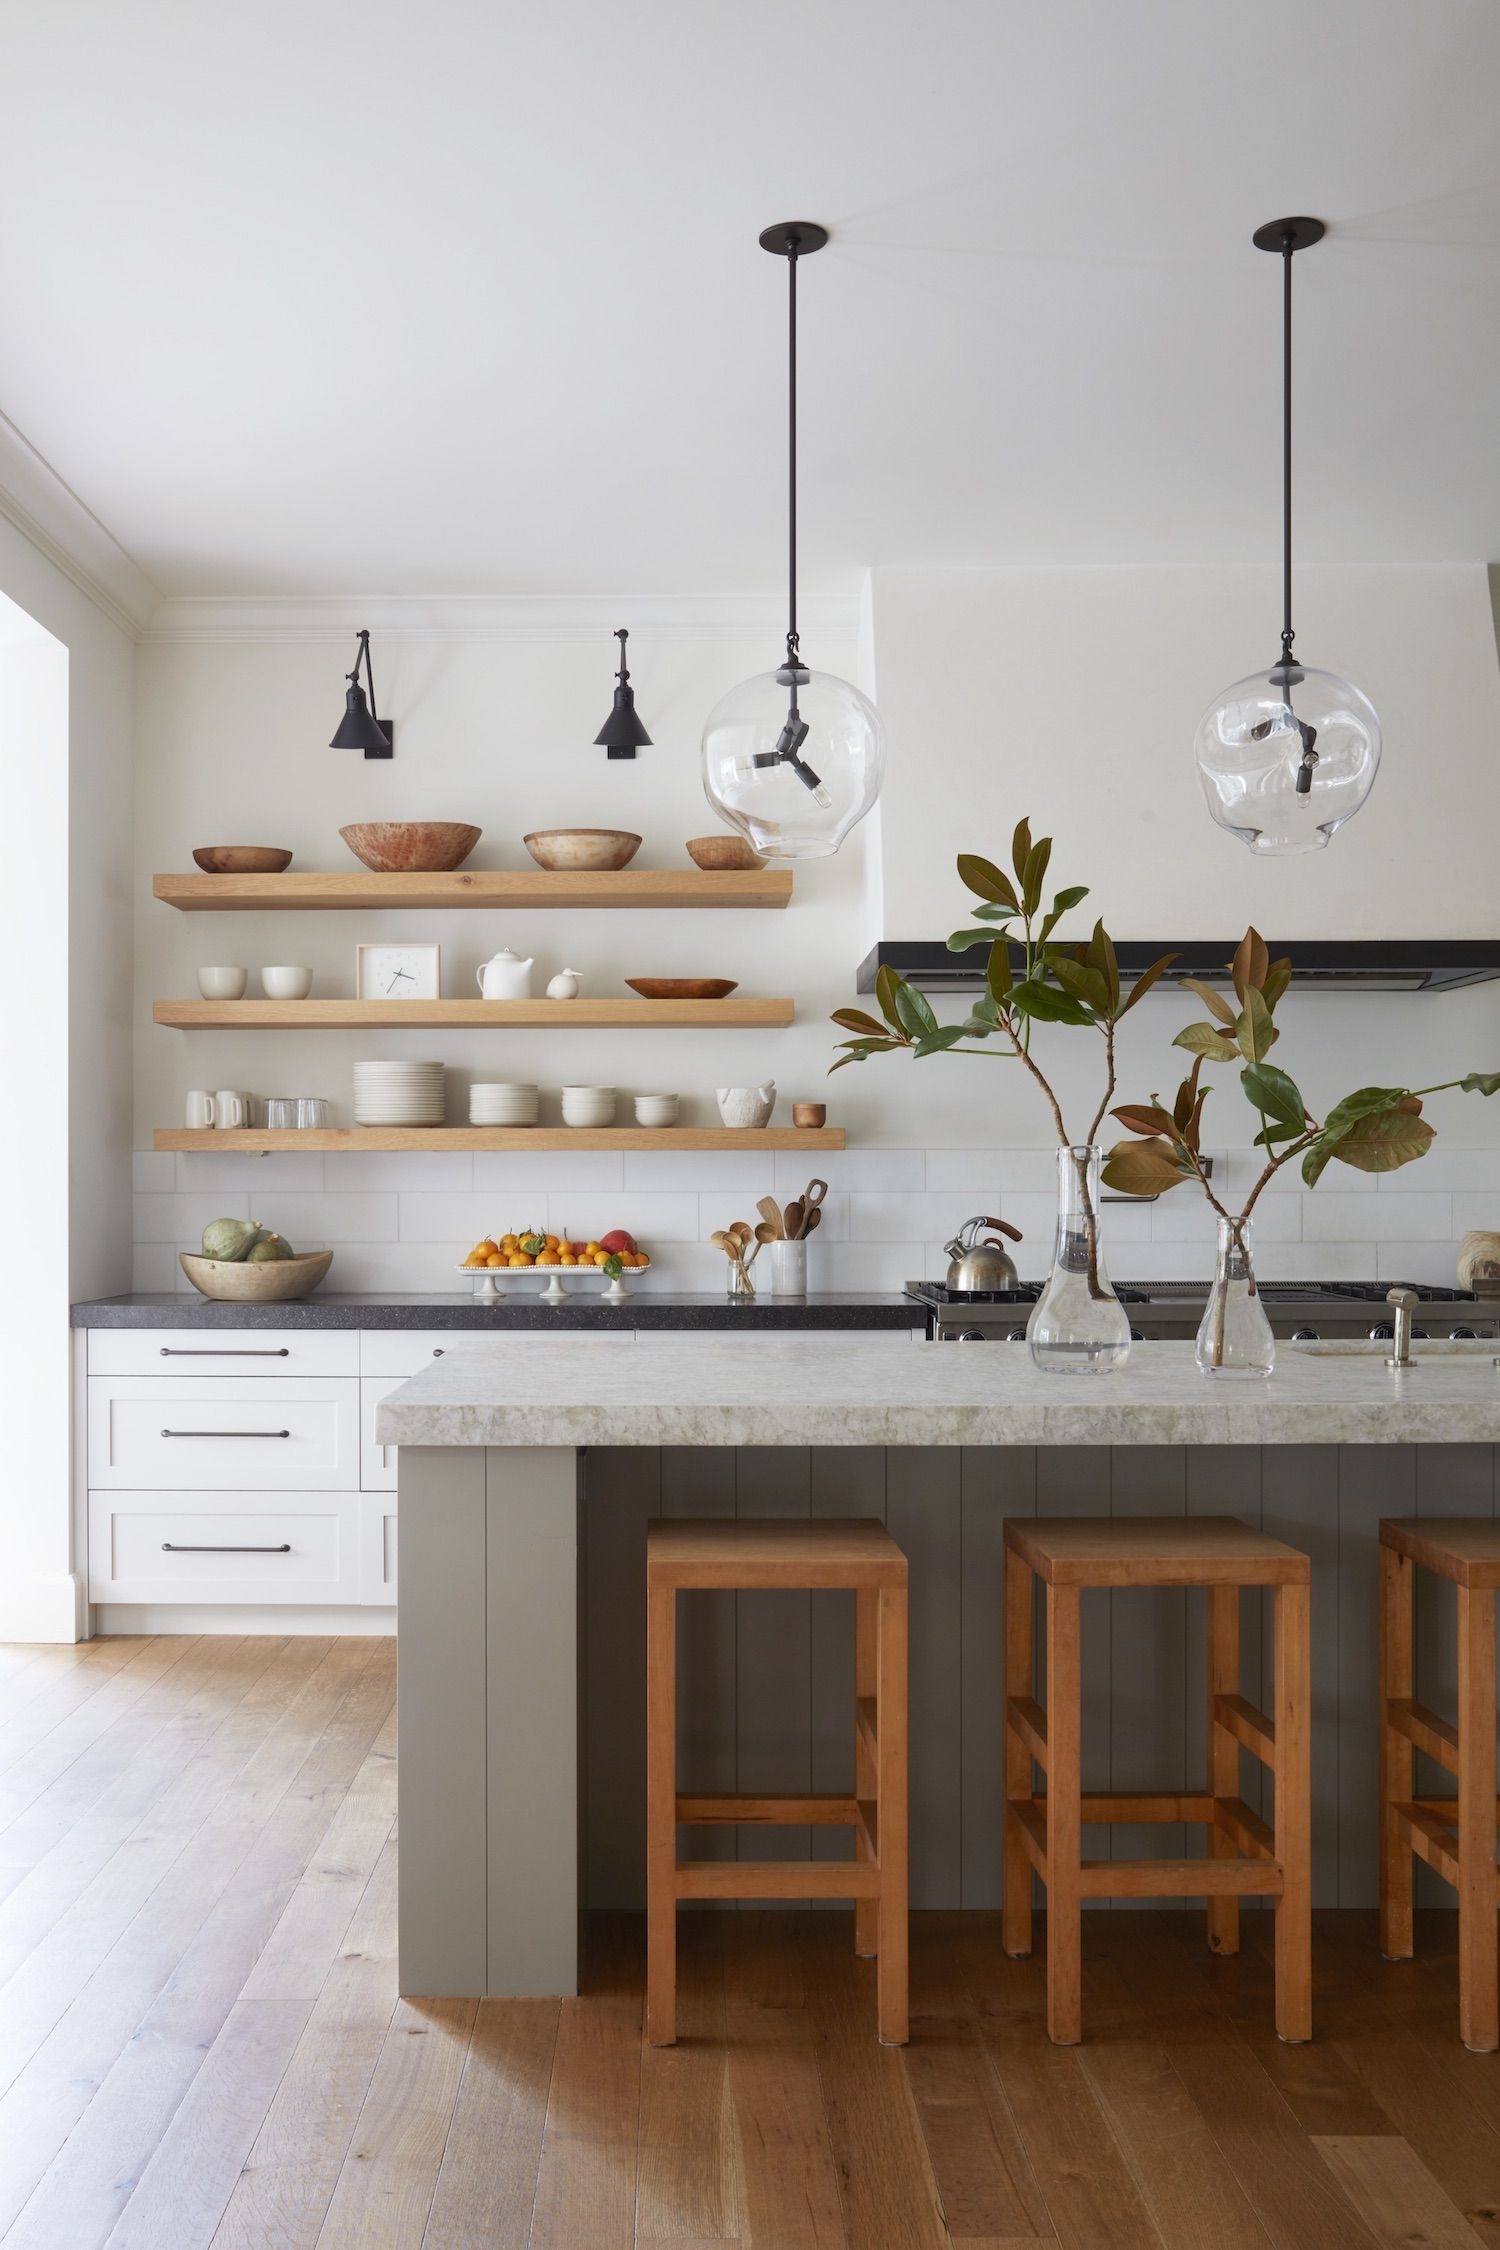 Easy planning for home improvement interior design also navy white and wood kitchen homes interiors in pinterest rh